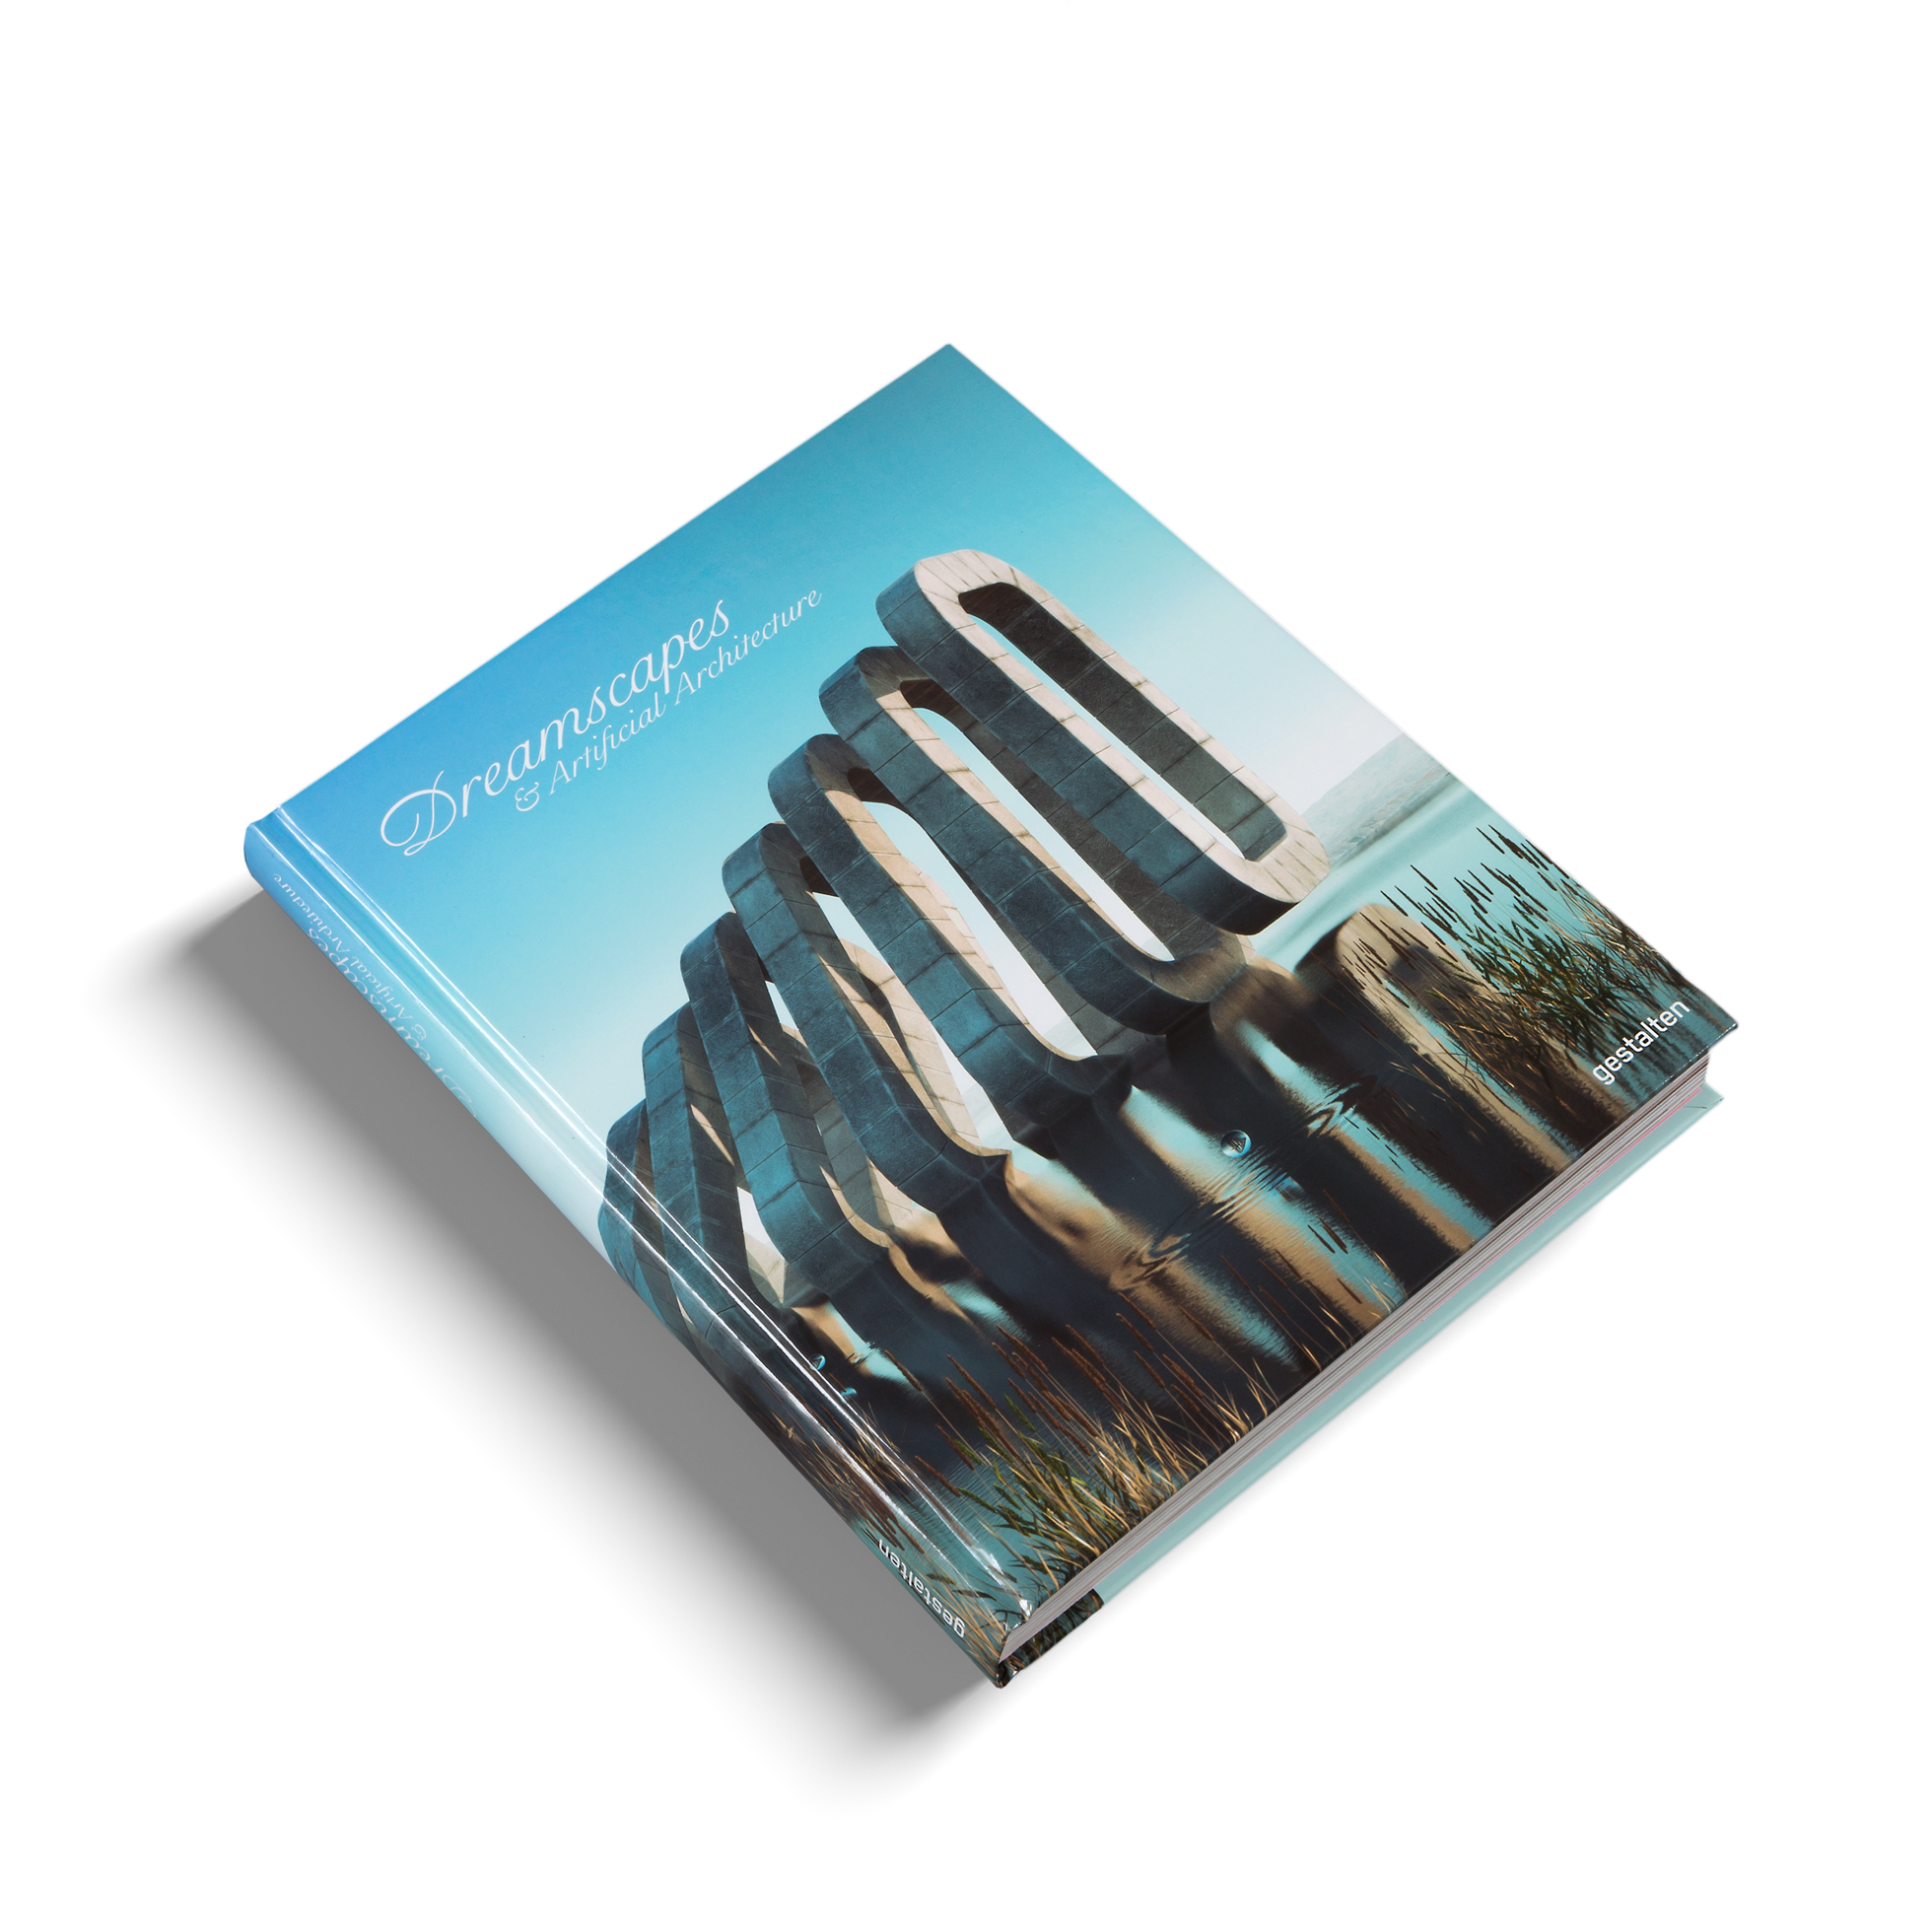 Dreamscapes & Artificial Architecture, a journey between reality and fantasy